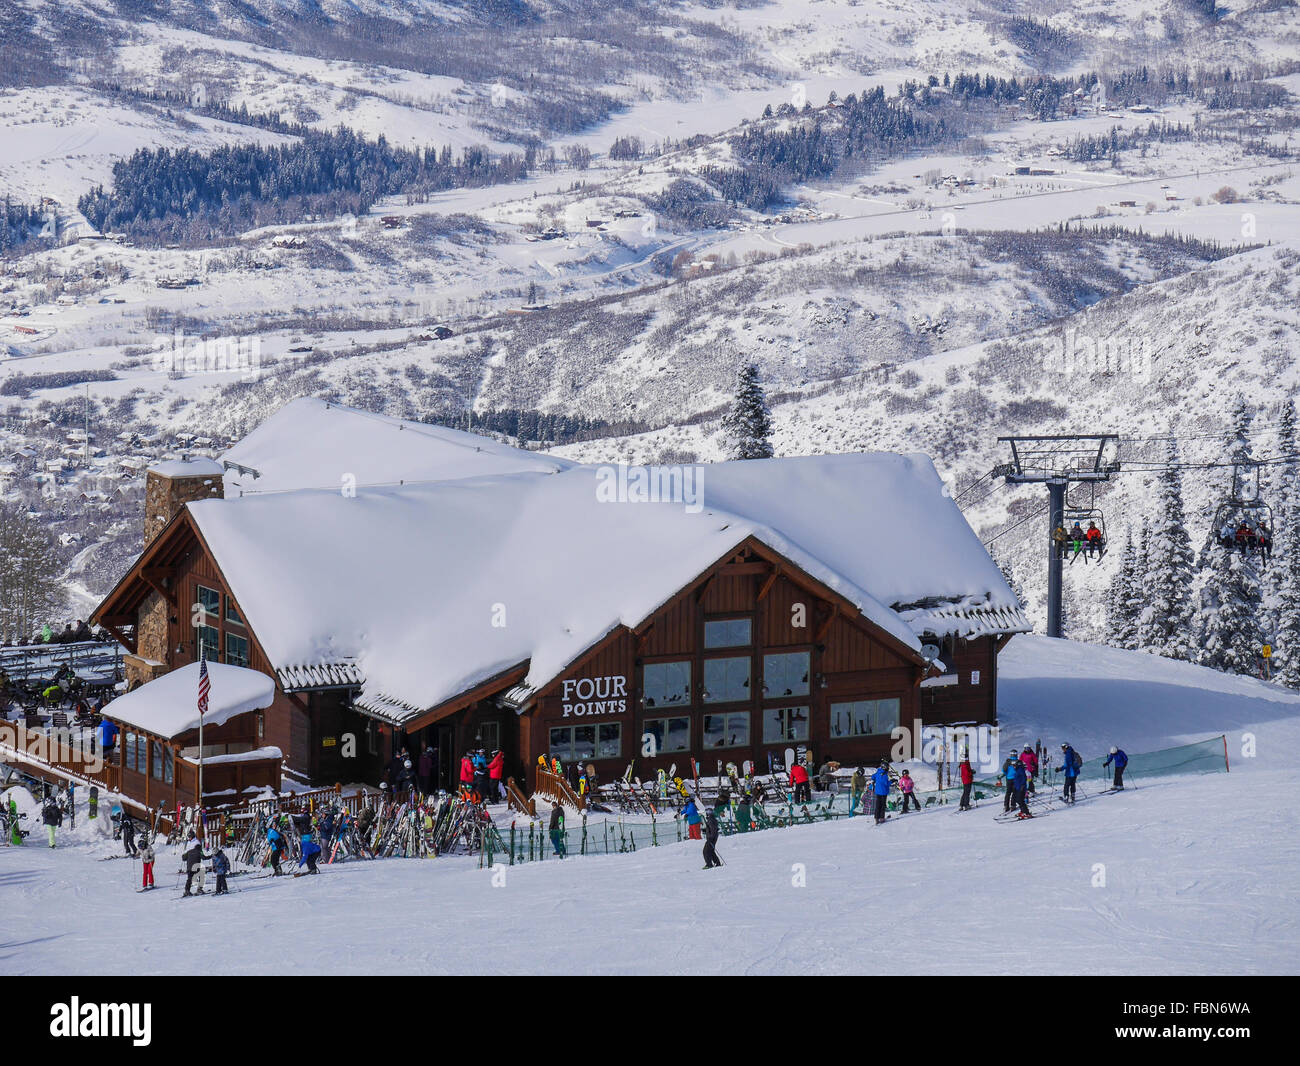 View of Four Points Lodge, Steamboat Ski Resort, Steamboat Springs, Colorado. - Stock Image